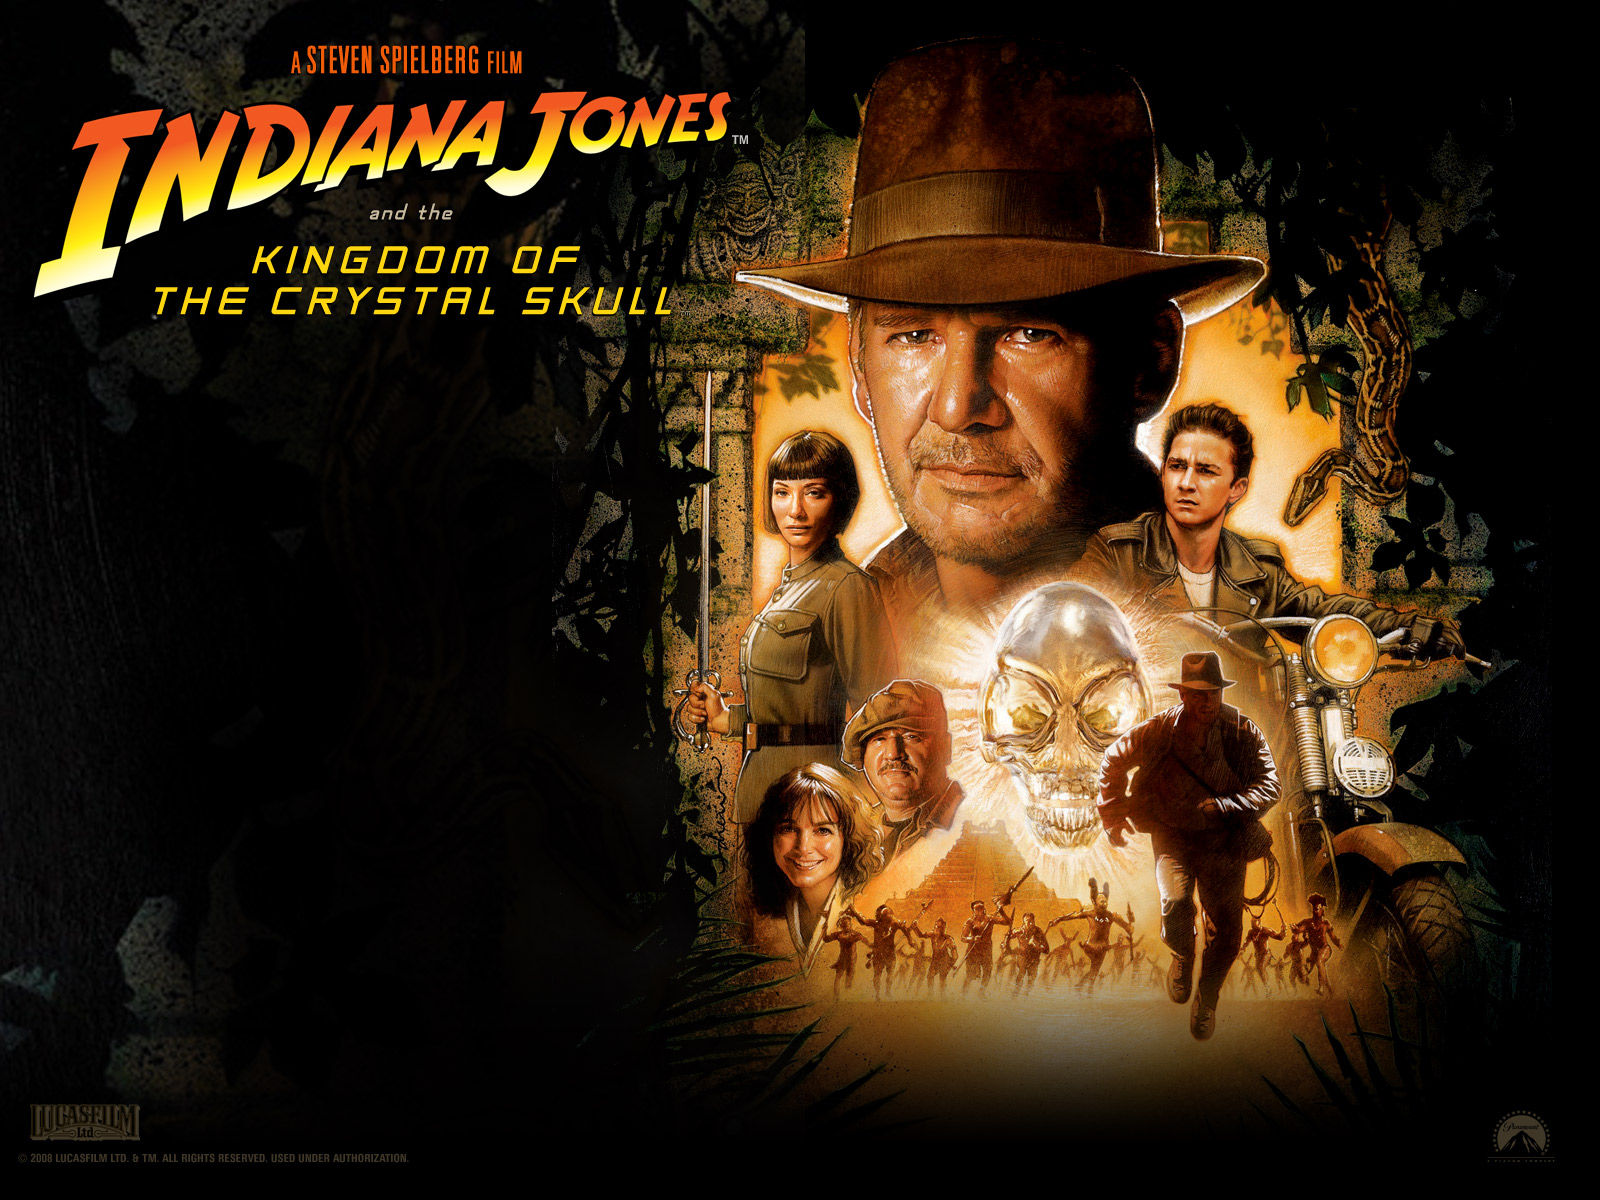 indiana_jones_and_the_kingdom_of_the_crystal_skull27.jpg